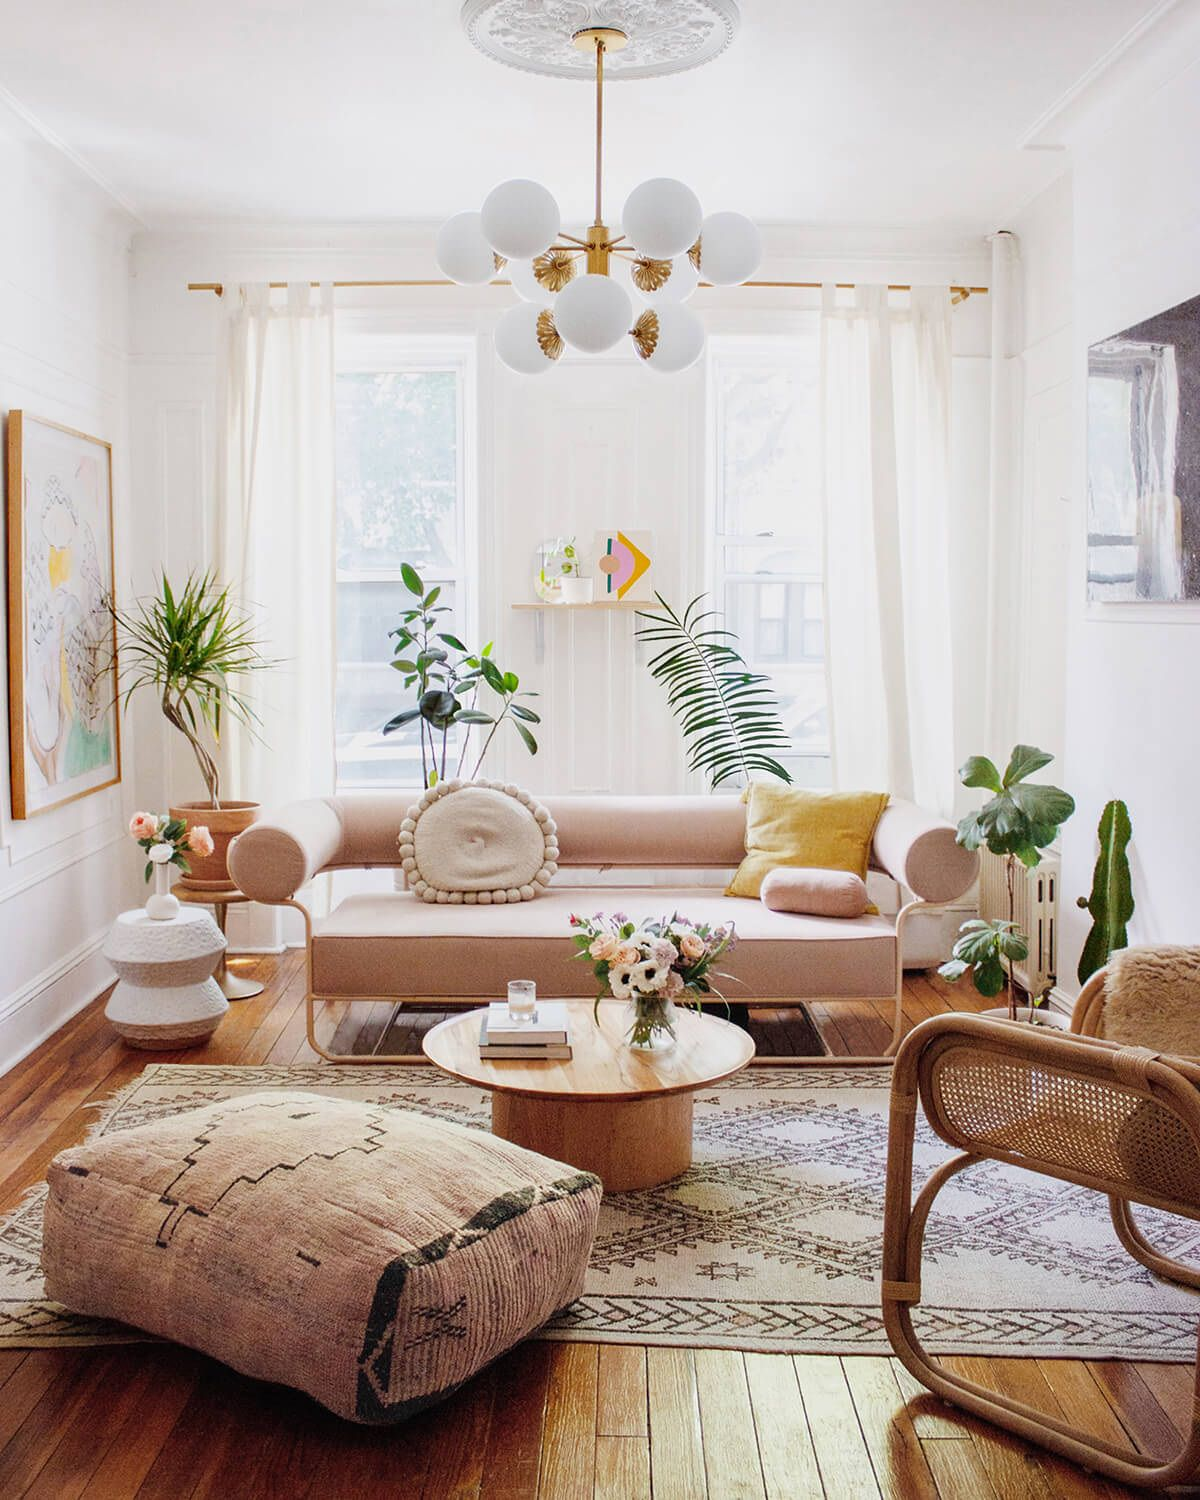 55 Simple Decorating Ideas For Small Living Room 2021 Apartment Living Room Design Small Apartment Living Room Design Living Room Decor Apartment